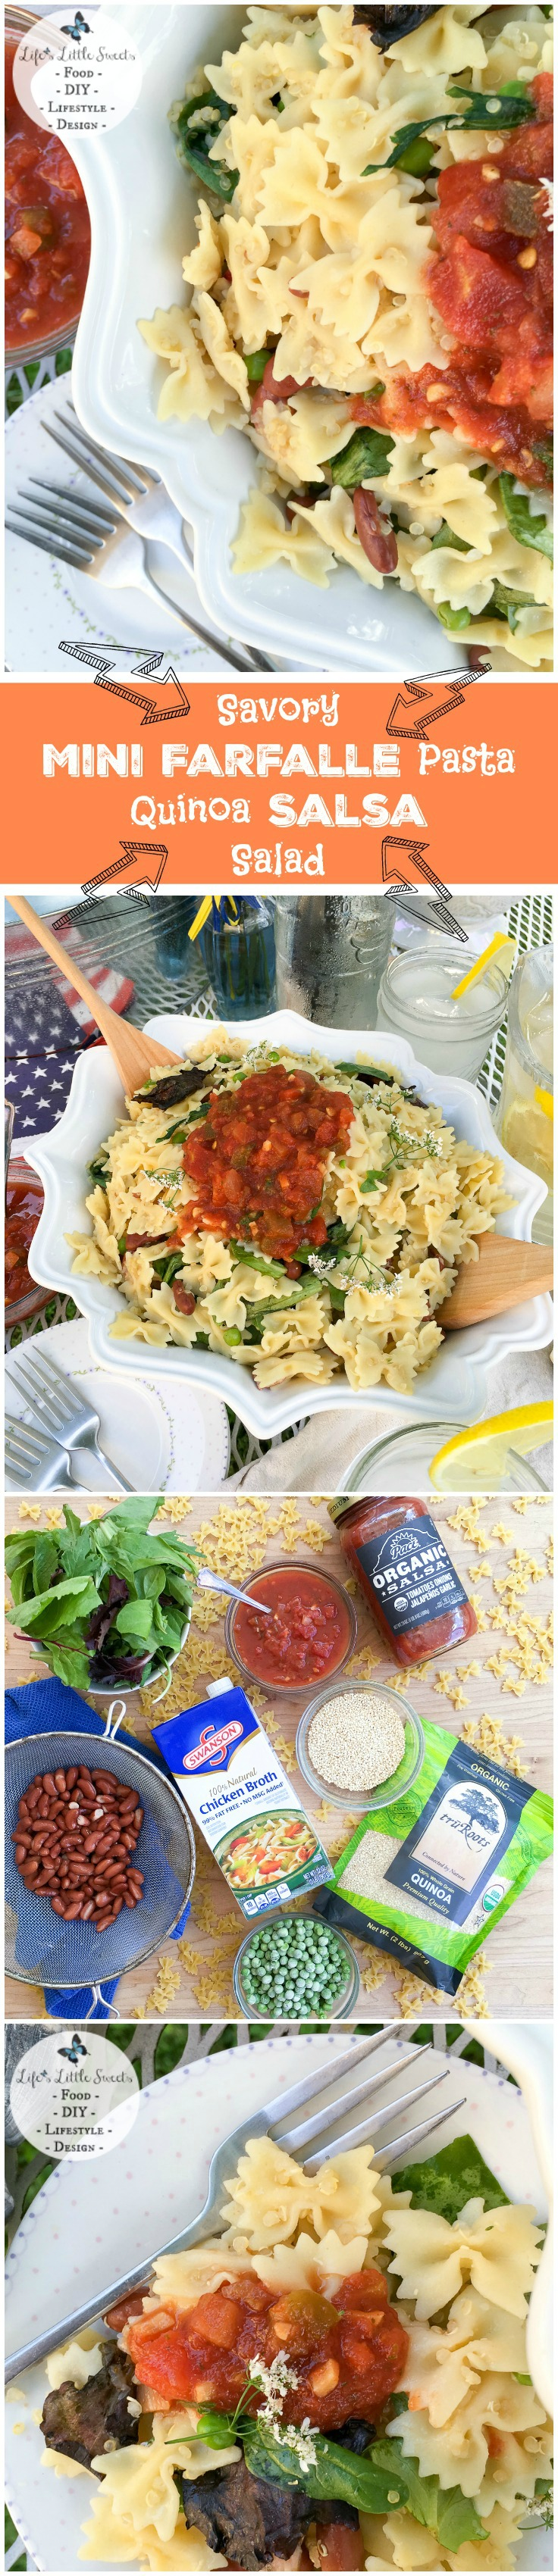 This Savory Mini Farfalle Pasta Quinoa Salsa Salad can be served warm or chilled and is great for bringing to a Summer BBQ, Potluck or any gathering. You can find all your ingredients like Swanson Chicken Broth, truRoots Organic Quinoa and Pace Medium Organic Salsa easily at Sam's Club. It uses only 1 pot for easy cleanup and a chicken broth reduction method to ensure that you get delicious, savory flavor in every bite! #BlockPartyHero #CollectiveBias #ad